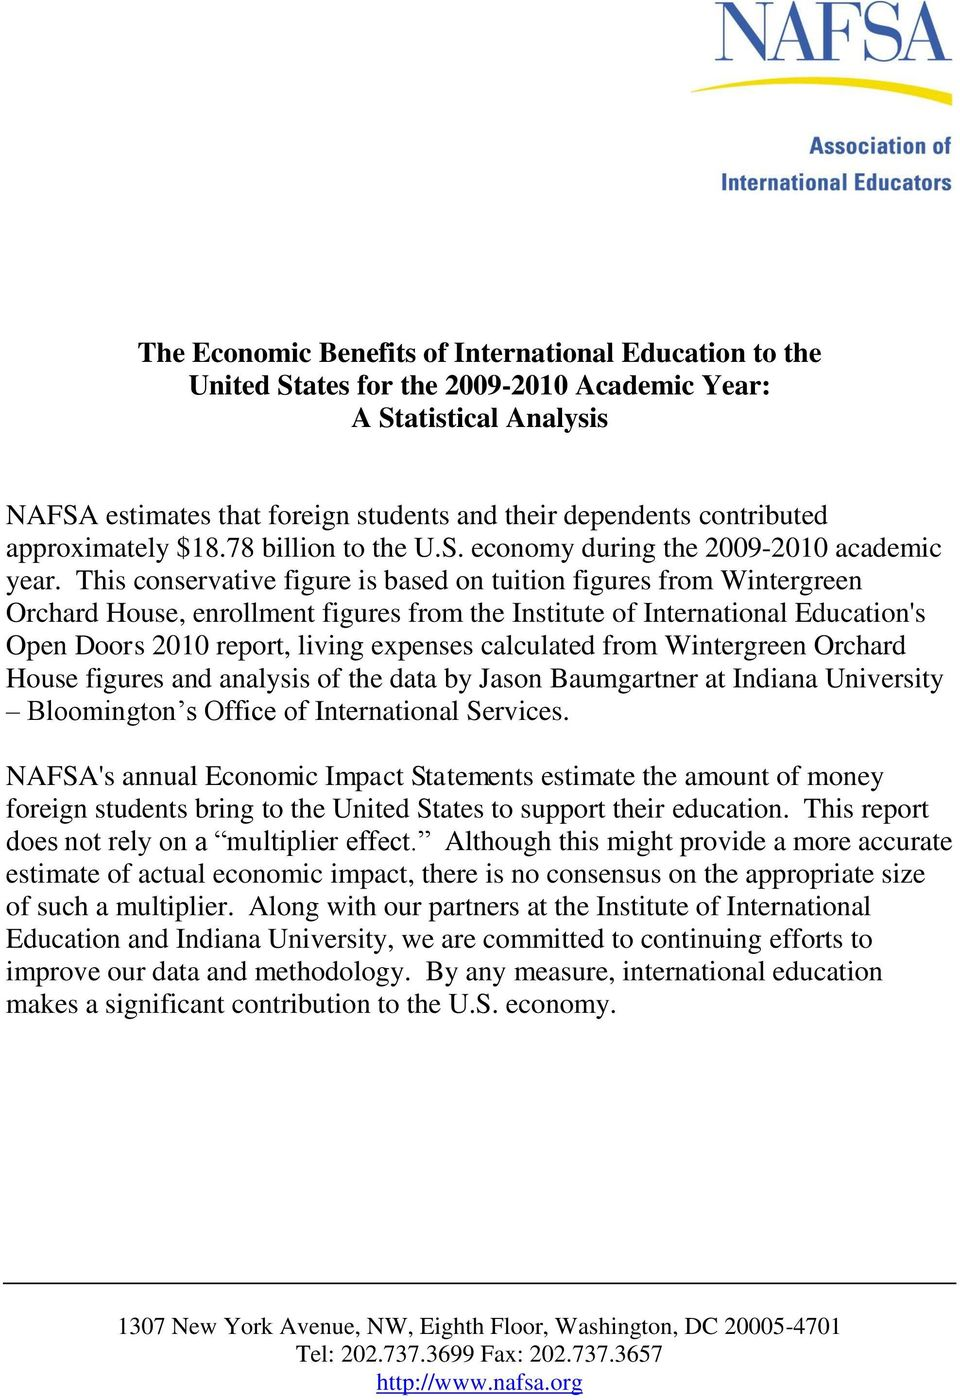 This conservative figure is based on tuition figures from Wintergreen Orchard House, enrollment figures from the Institute of International Education's Open Doors 2010 report, living expenses